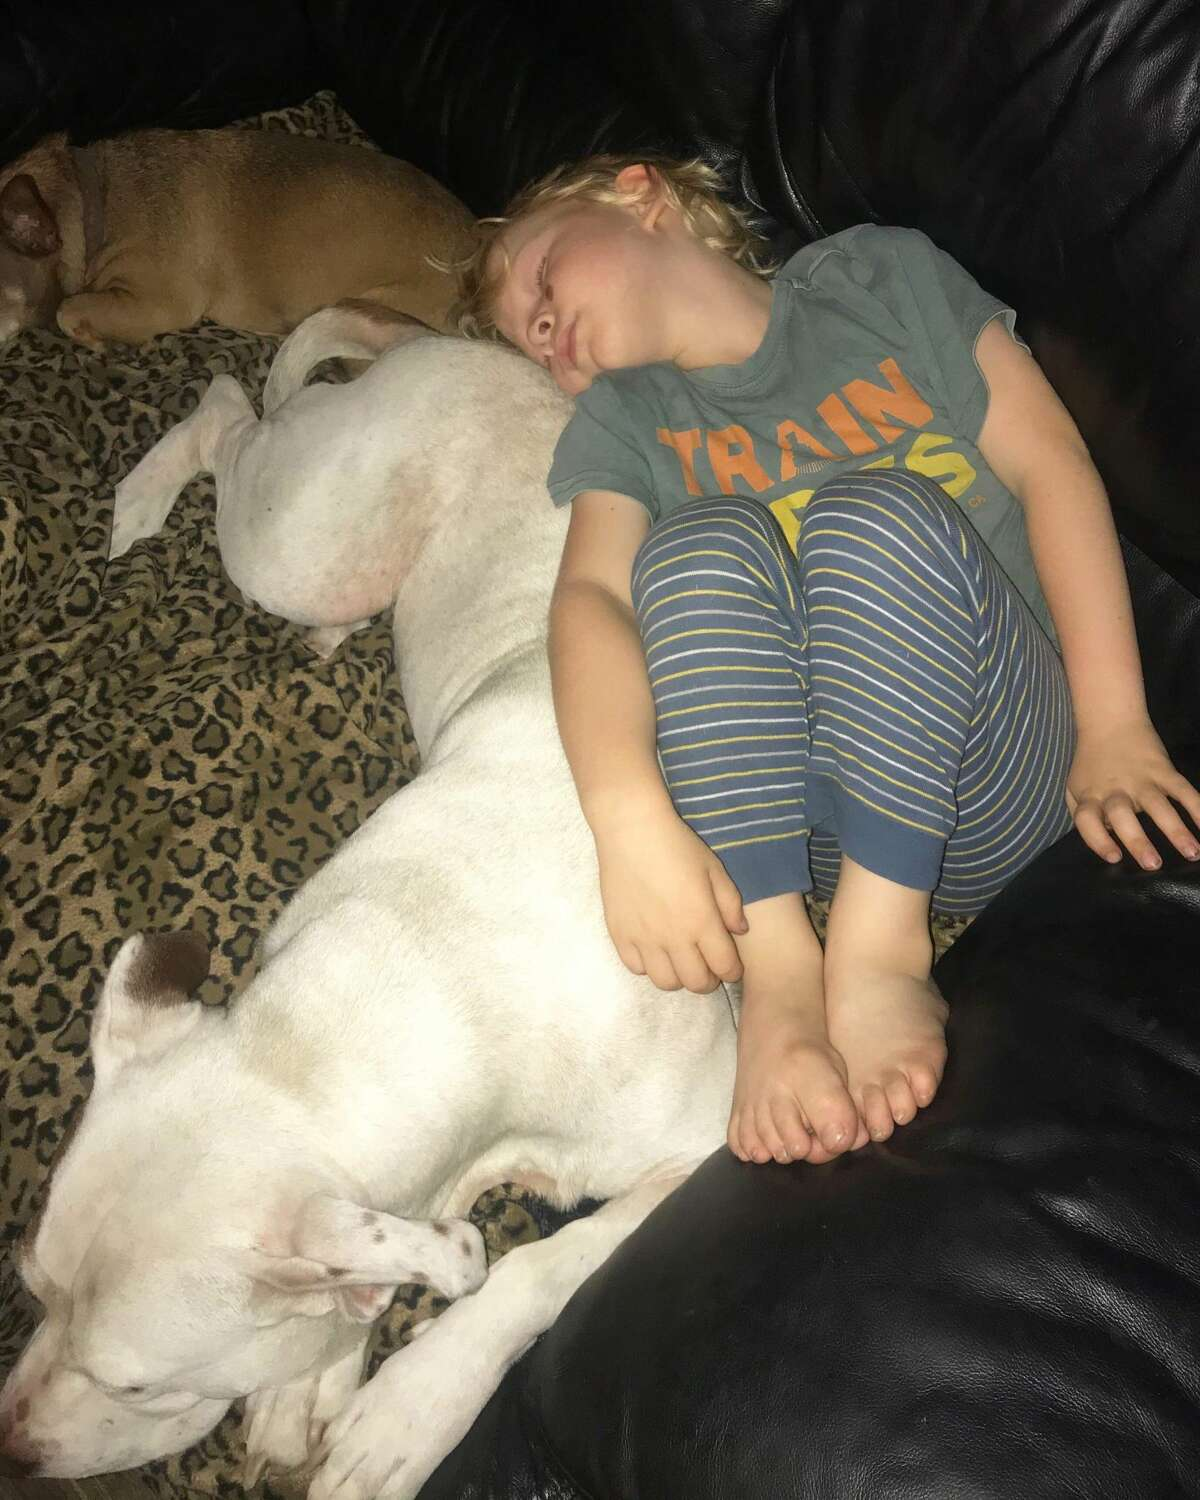 Finn entered the family shortly after Chloe did, and the two of them were inseparable, even taking naps together.